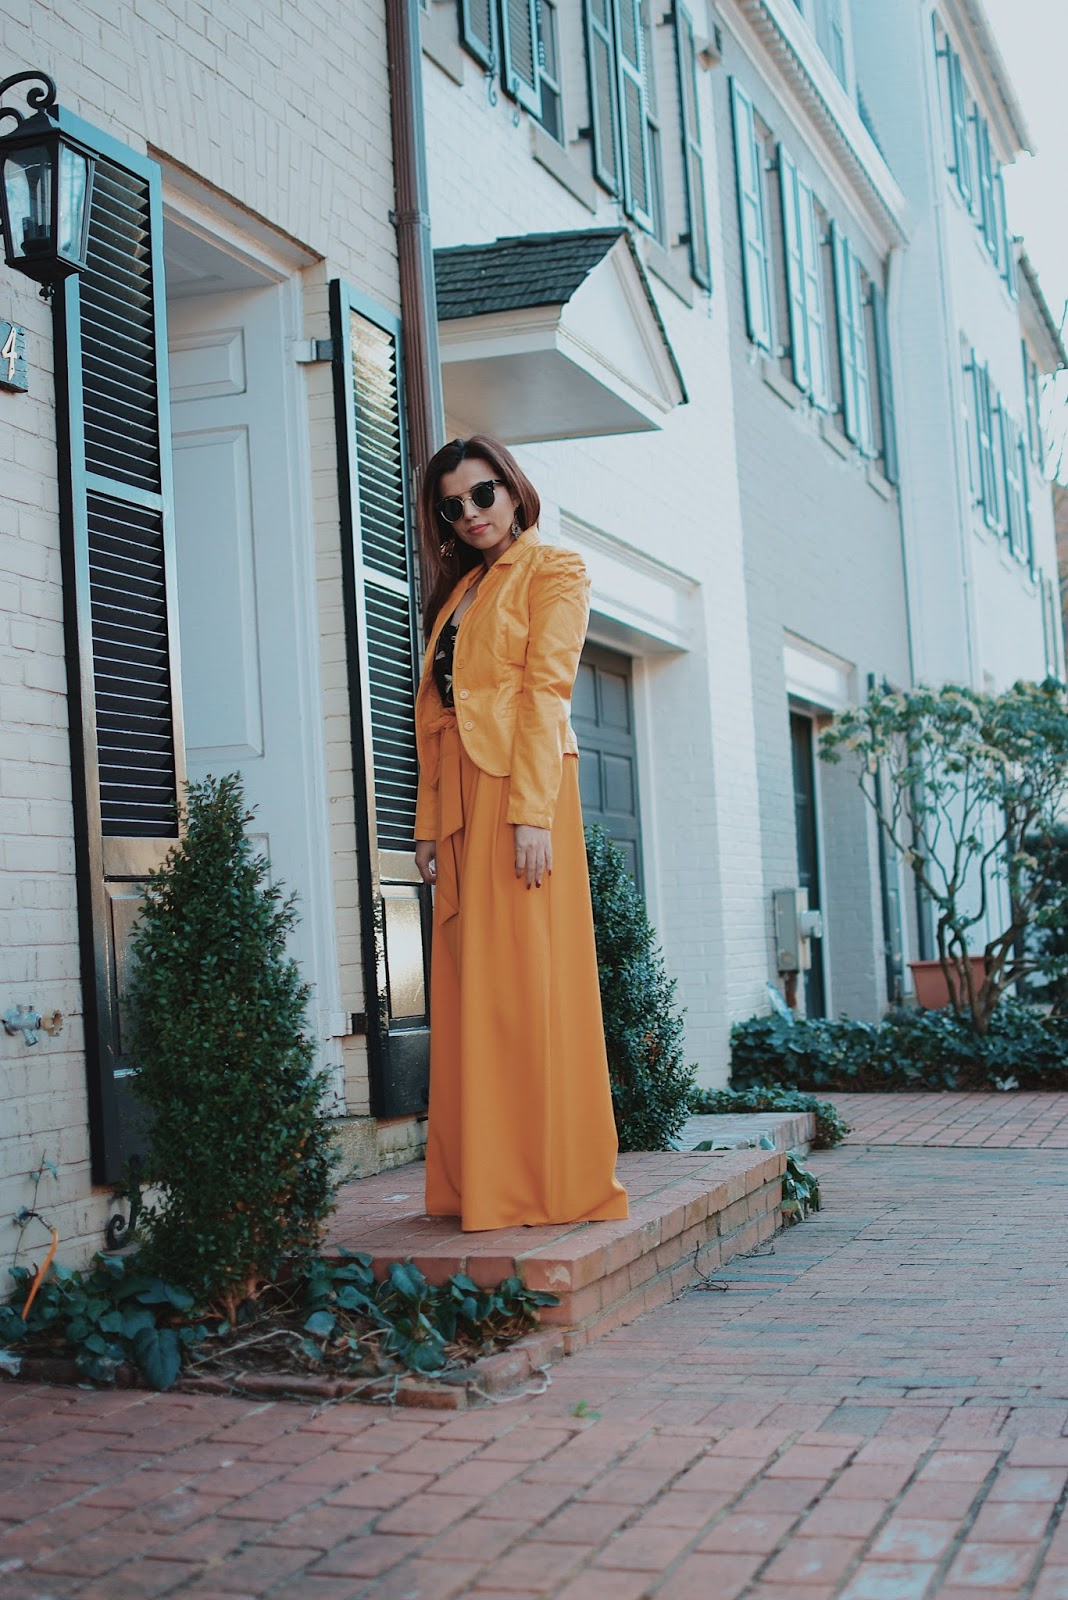 Mustard Yellow Outfit by MariEstilo